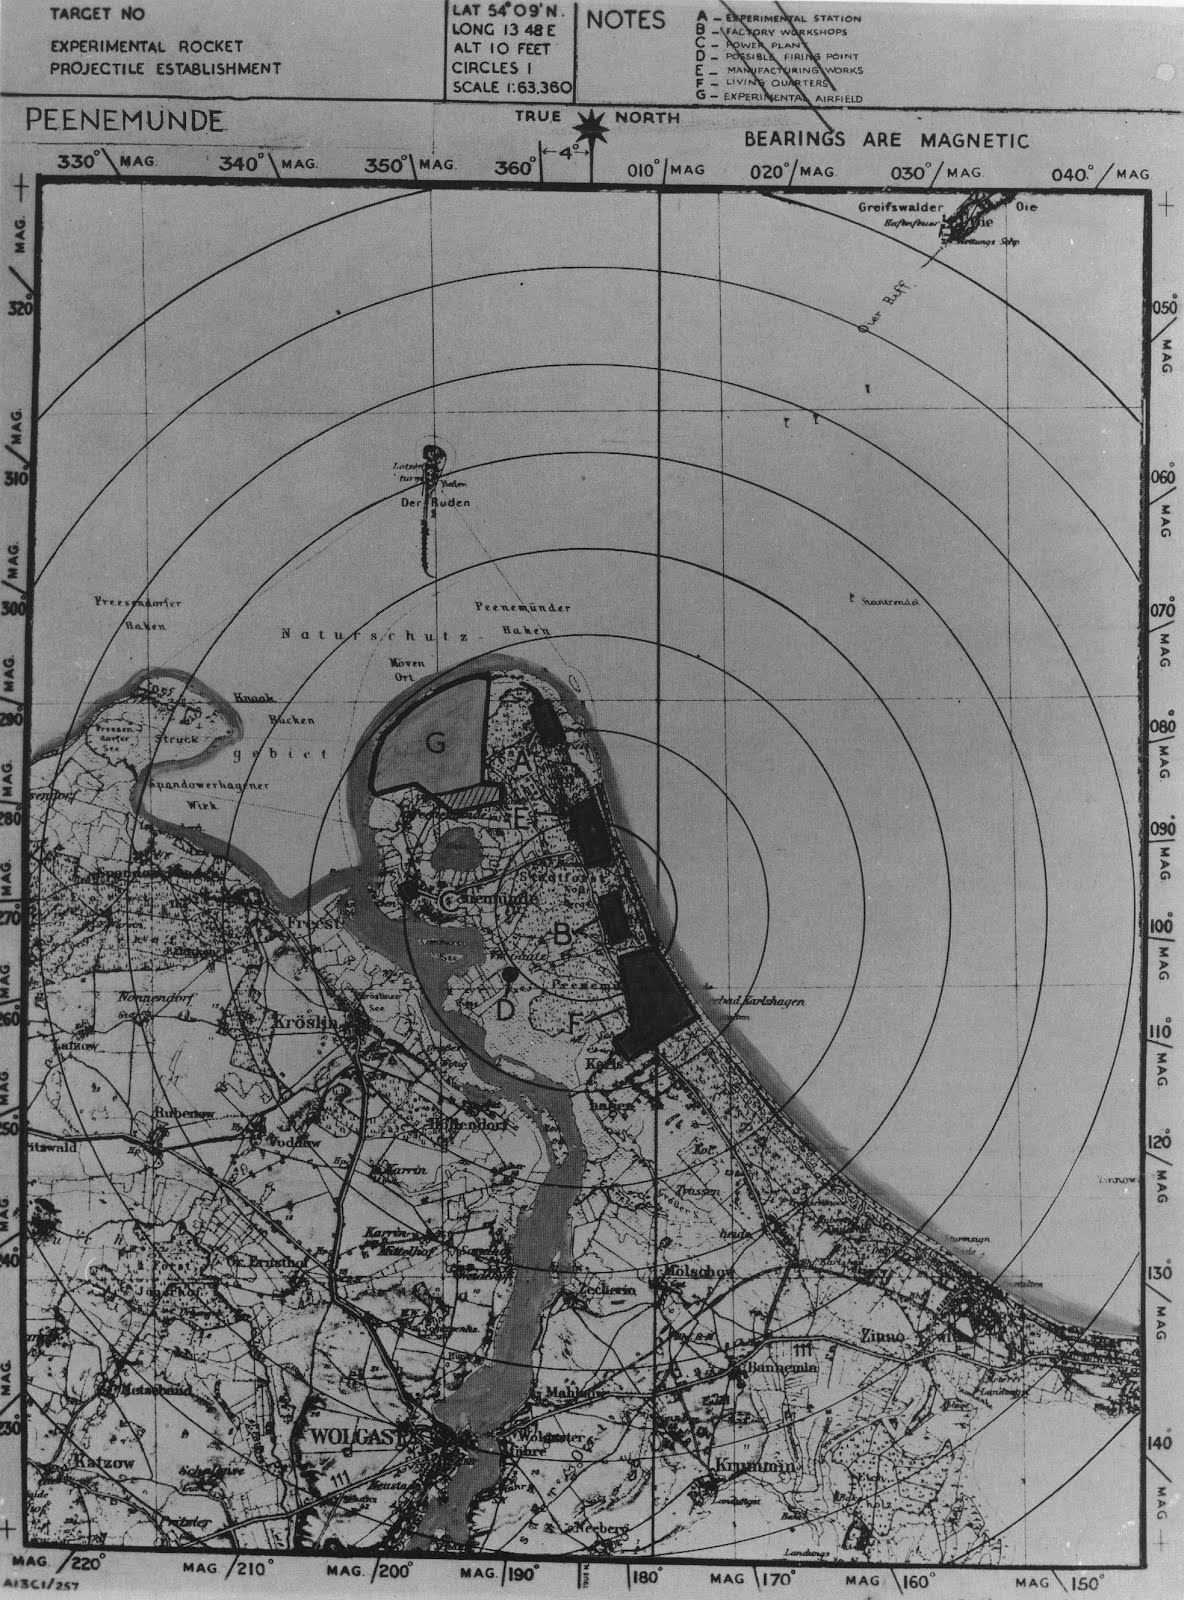 targed map of what british air inelligence termed the experimental rocket projectile establishment located at peenemuende ordway collection space rocket